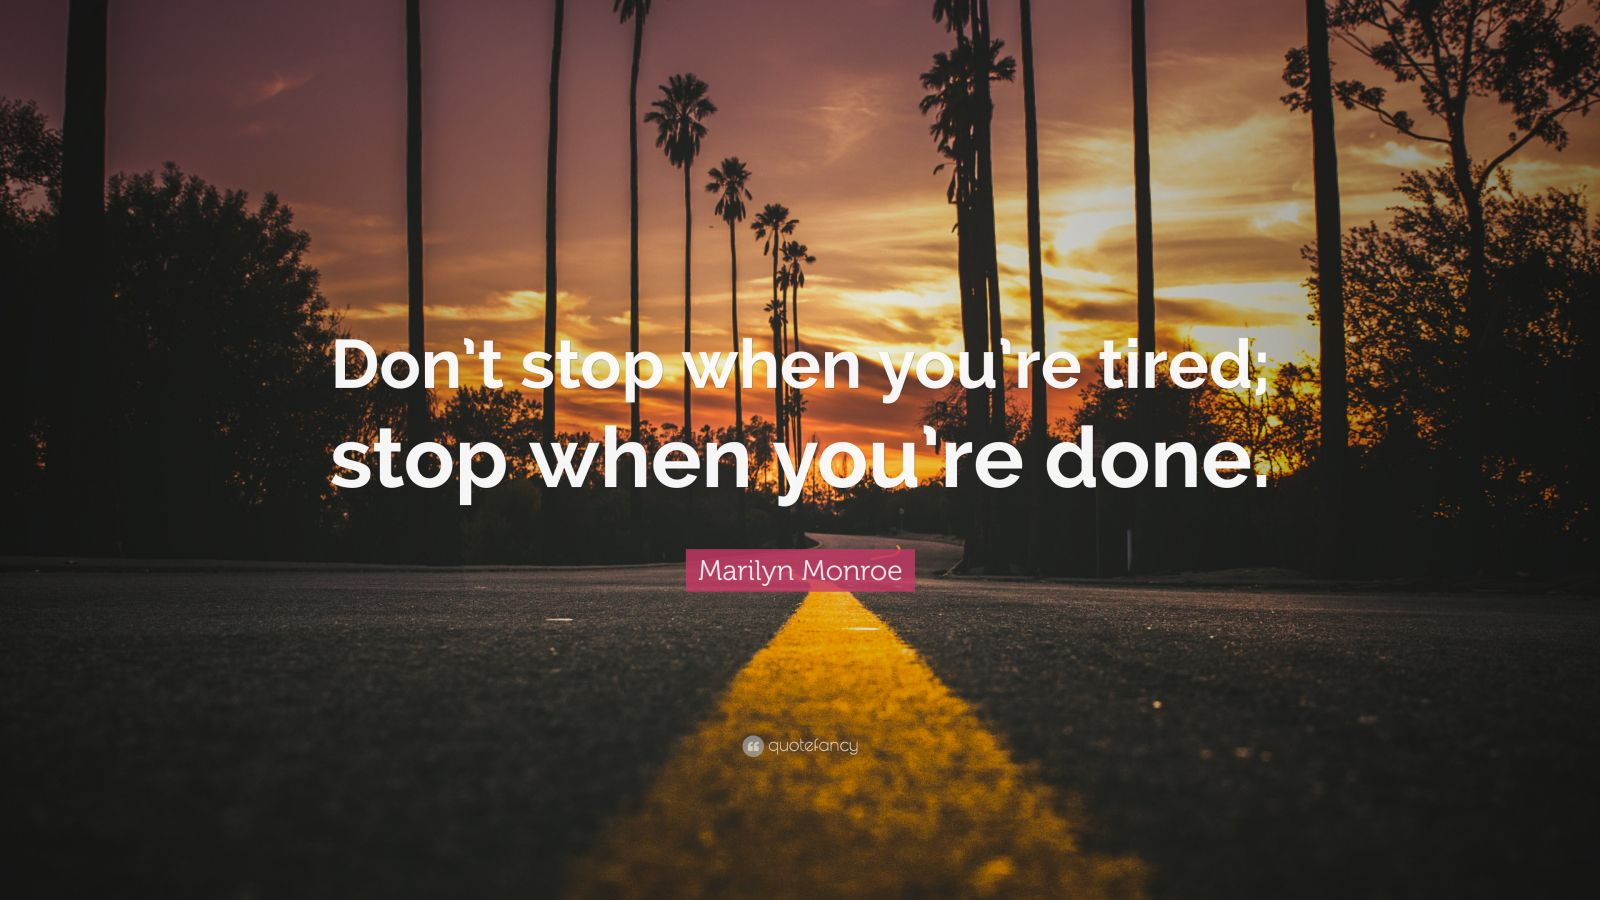 I Quit Quotes Wallpaper Marilyn Monroe Quote Don T Stop When You Re Tired Stop